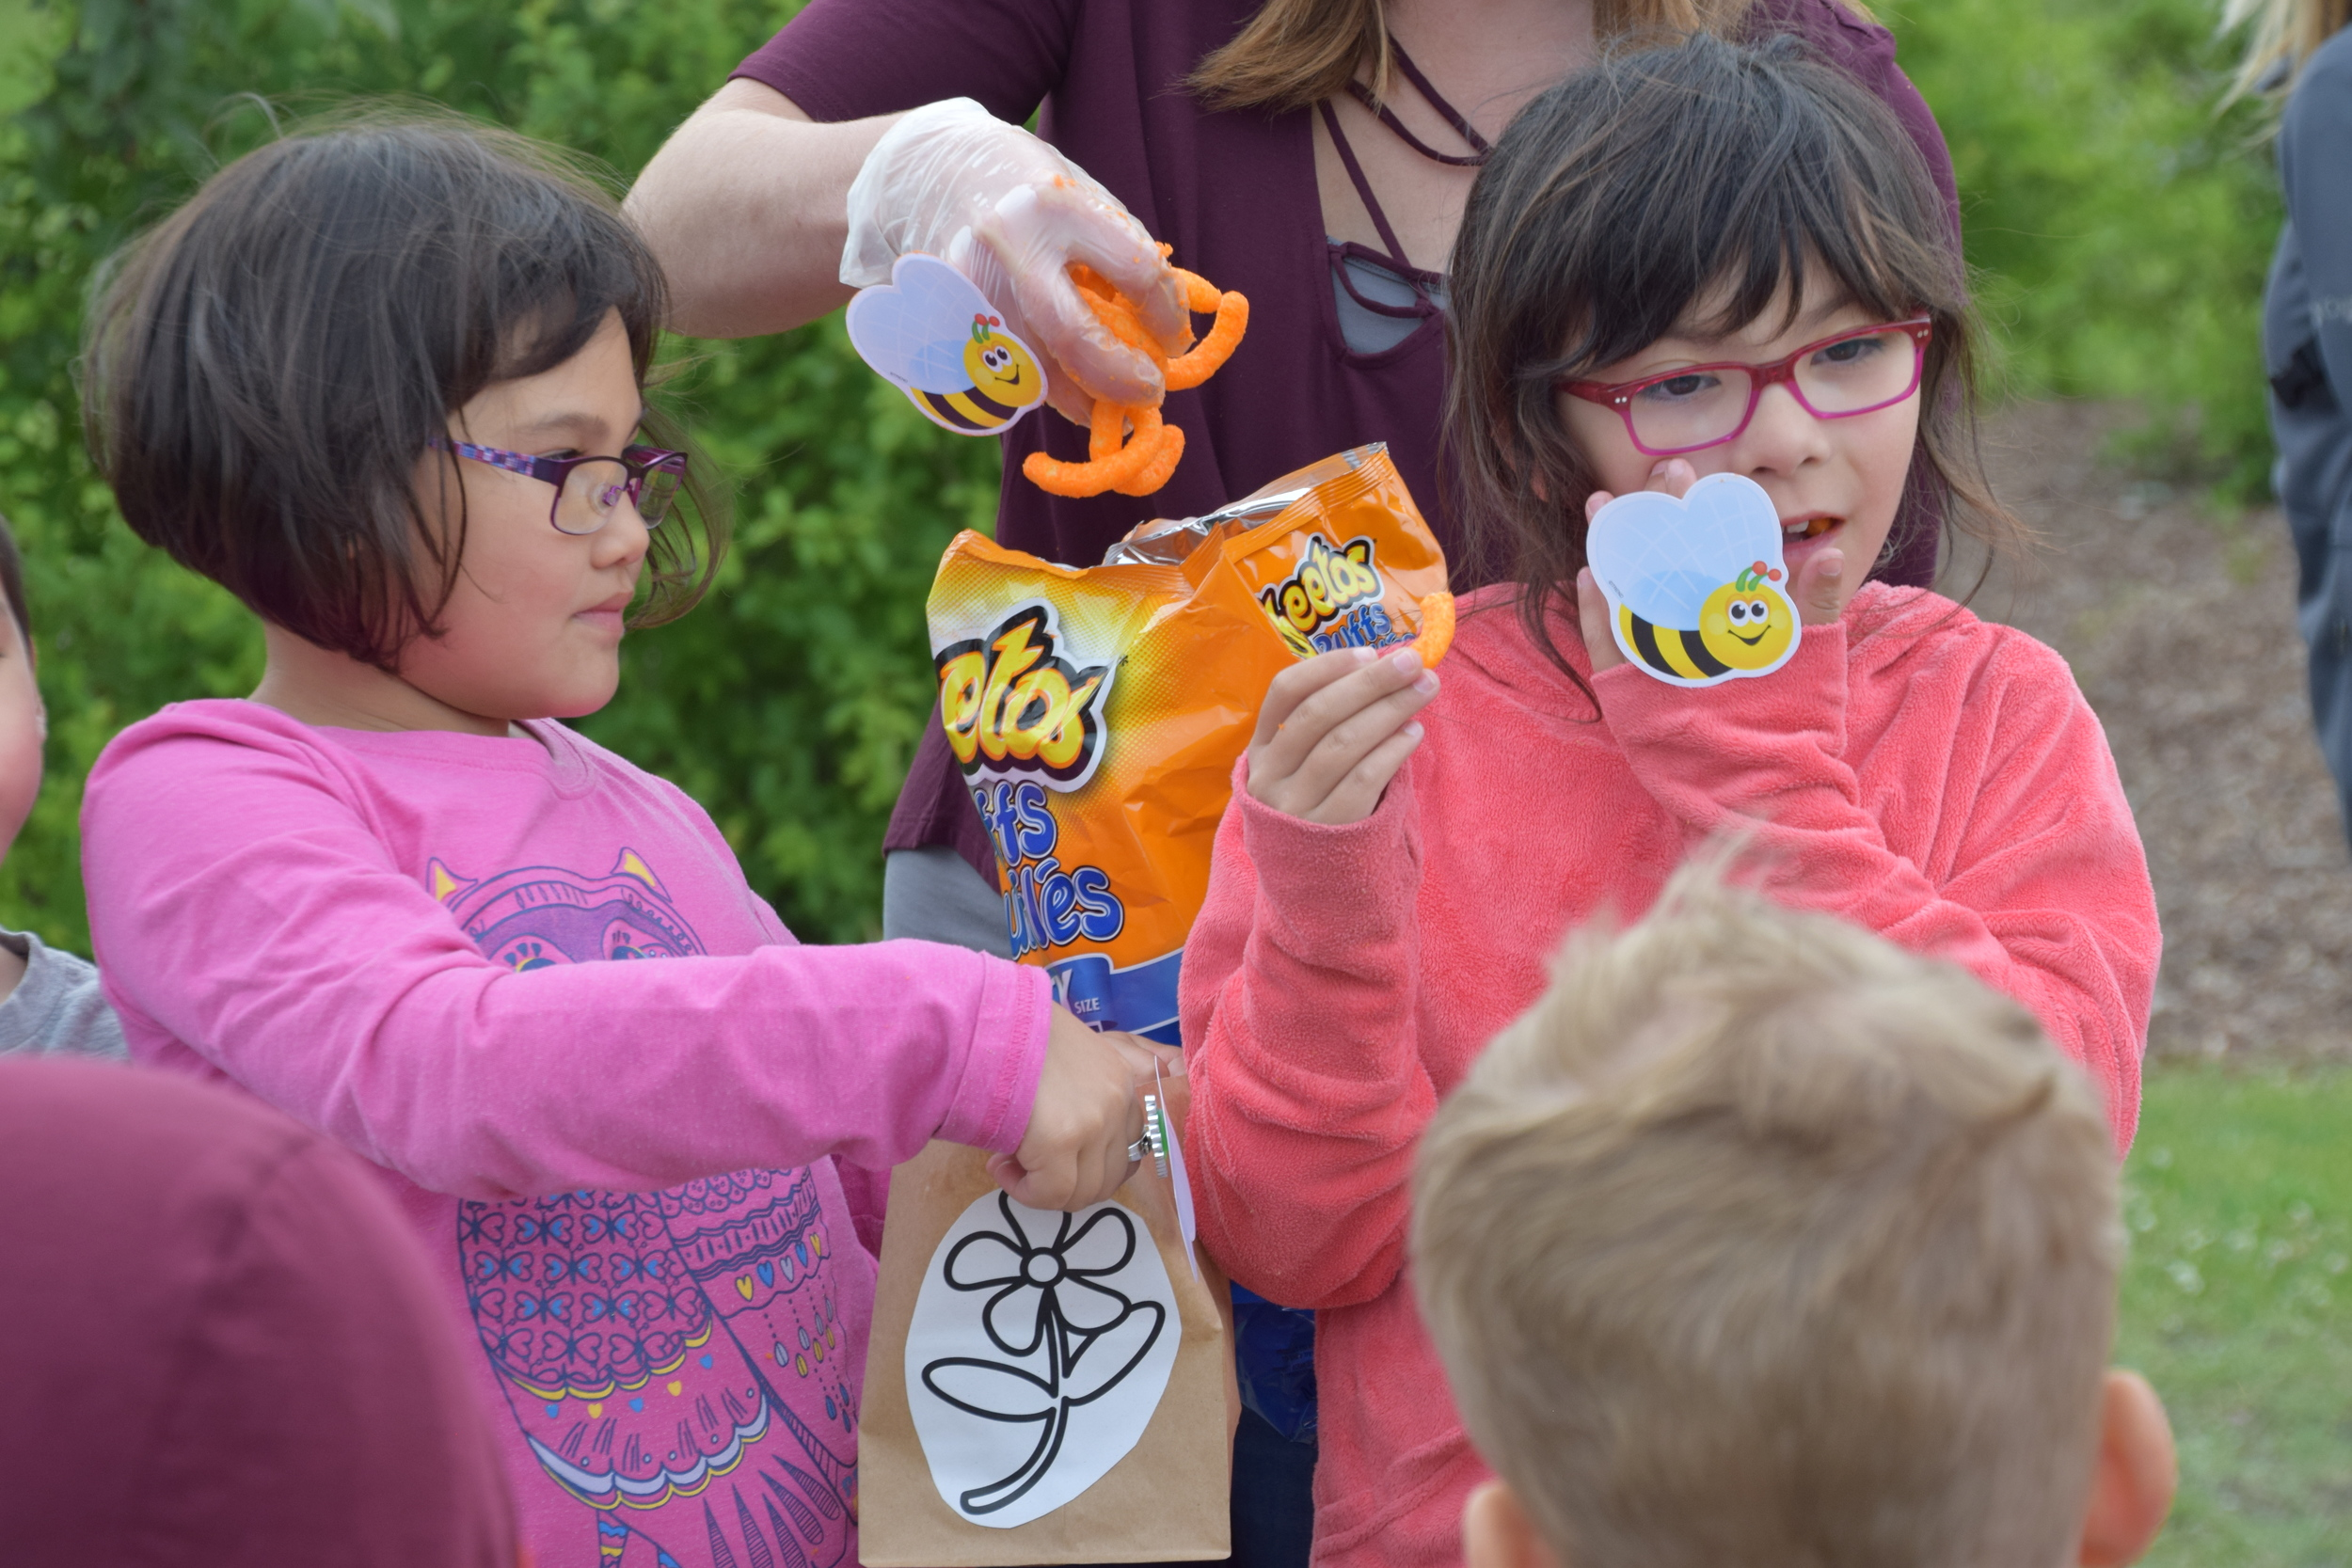 Then using cheetos to demonstrate pollination,